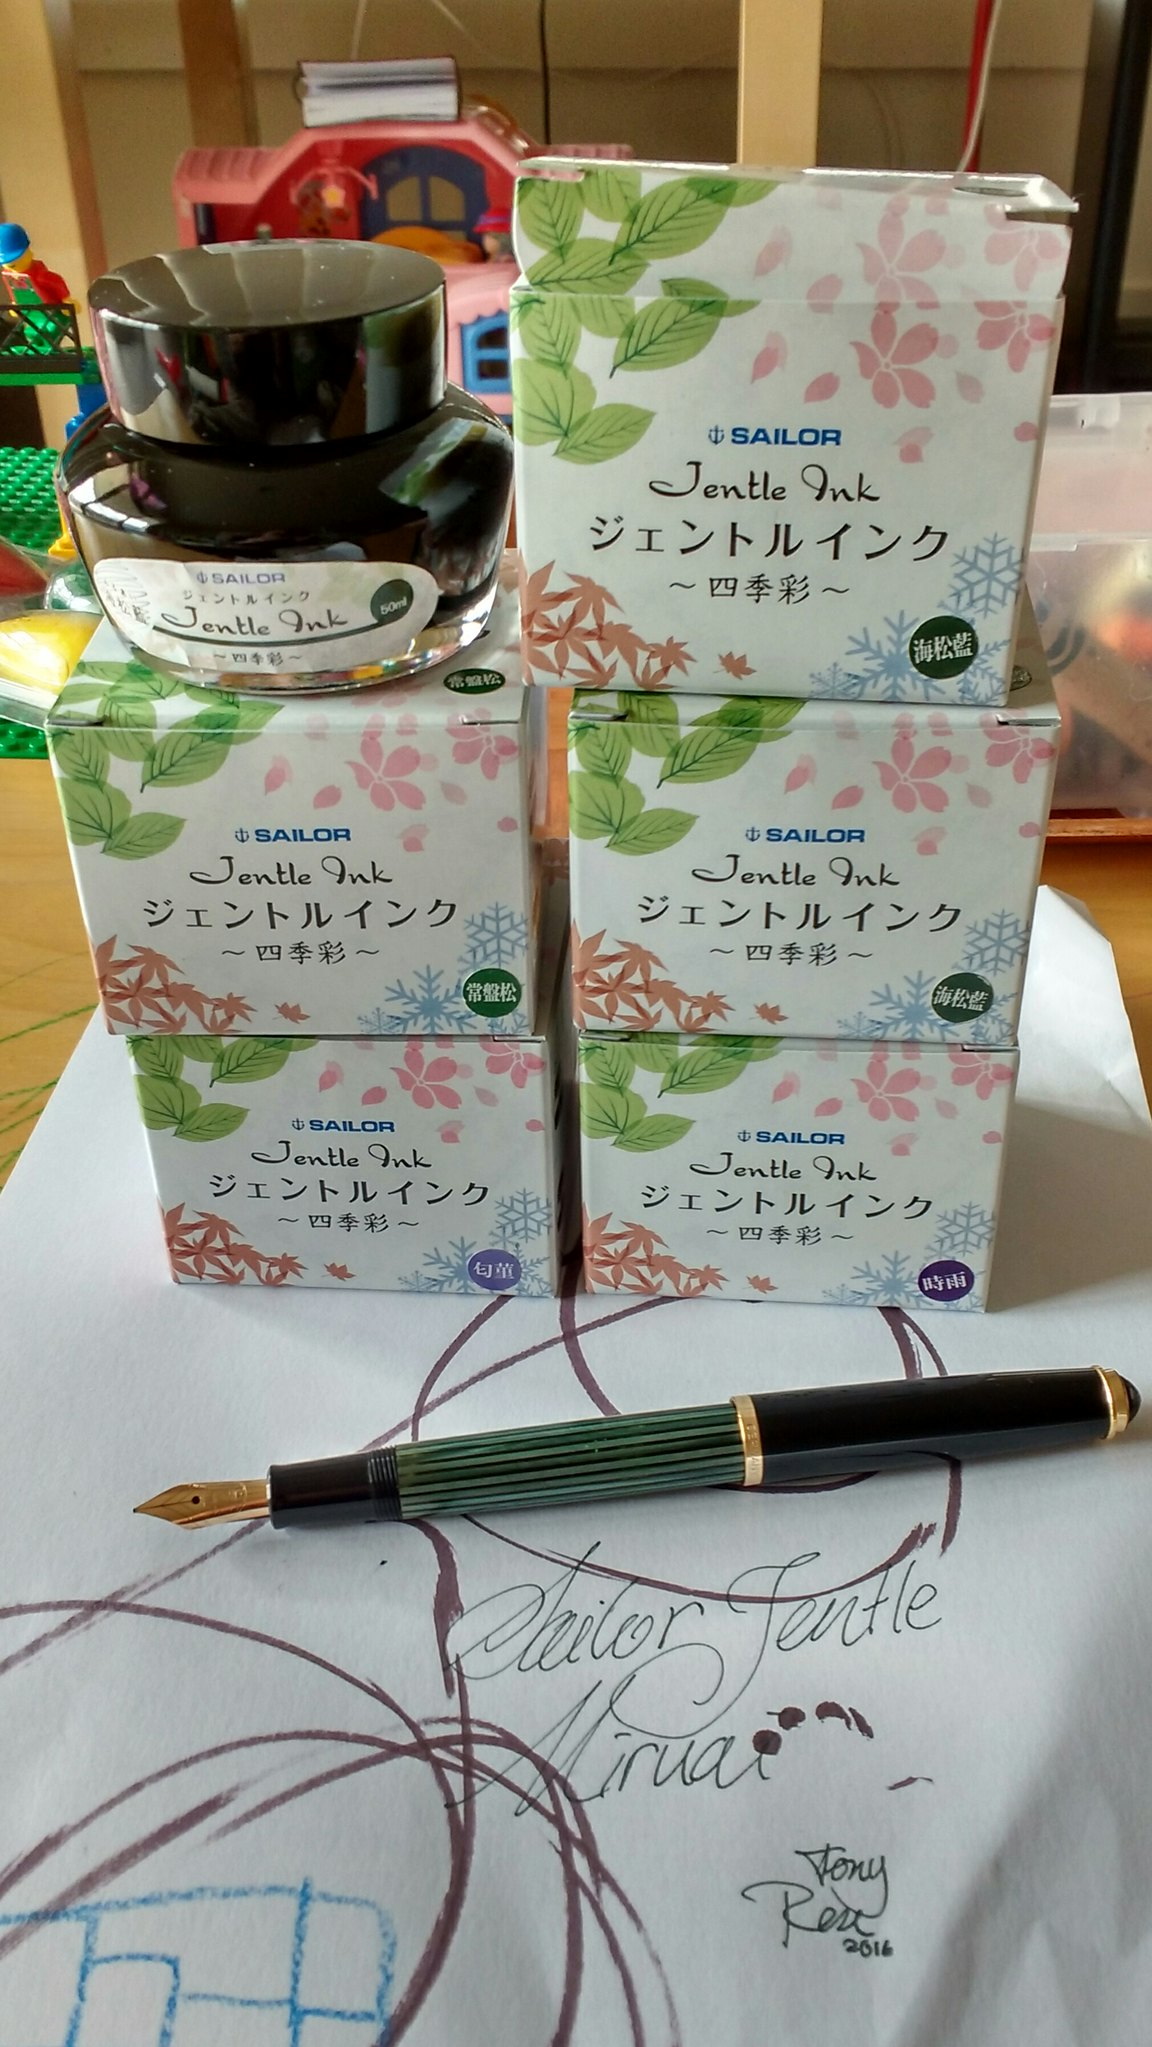 Sailor new Jentle Inks